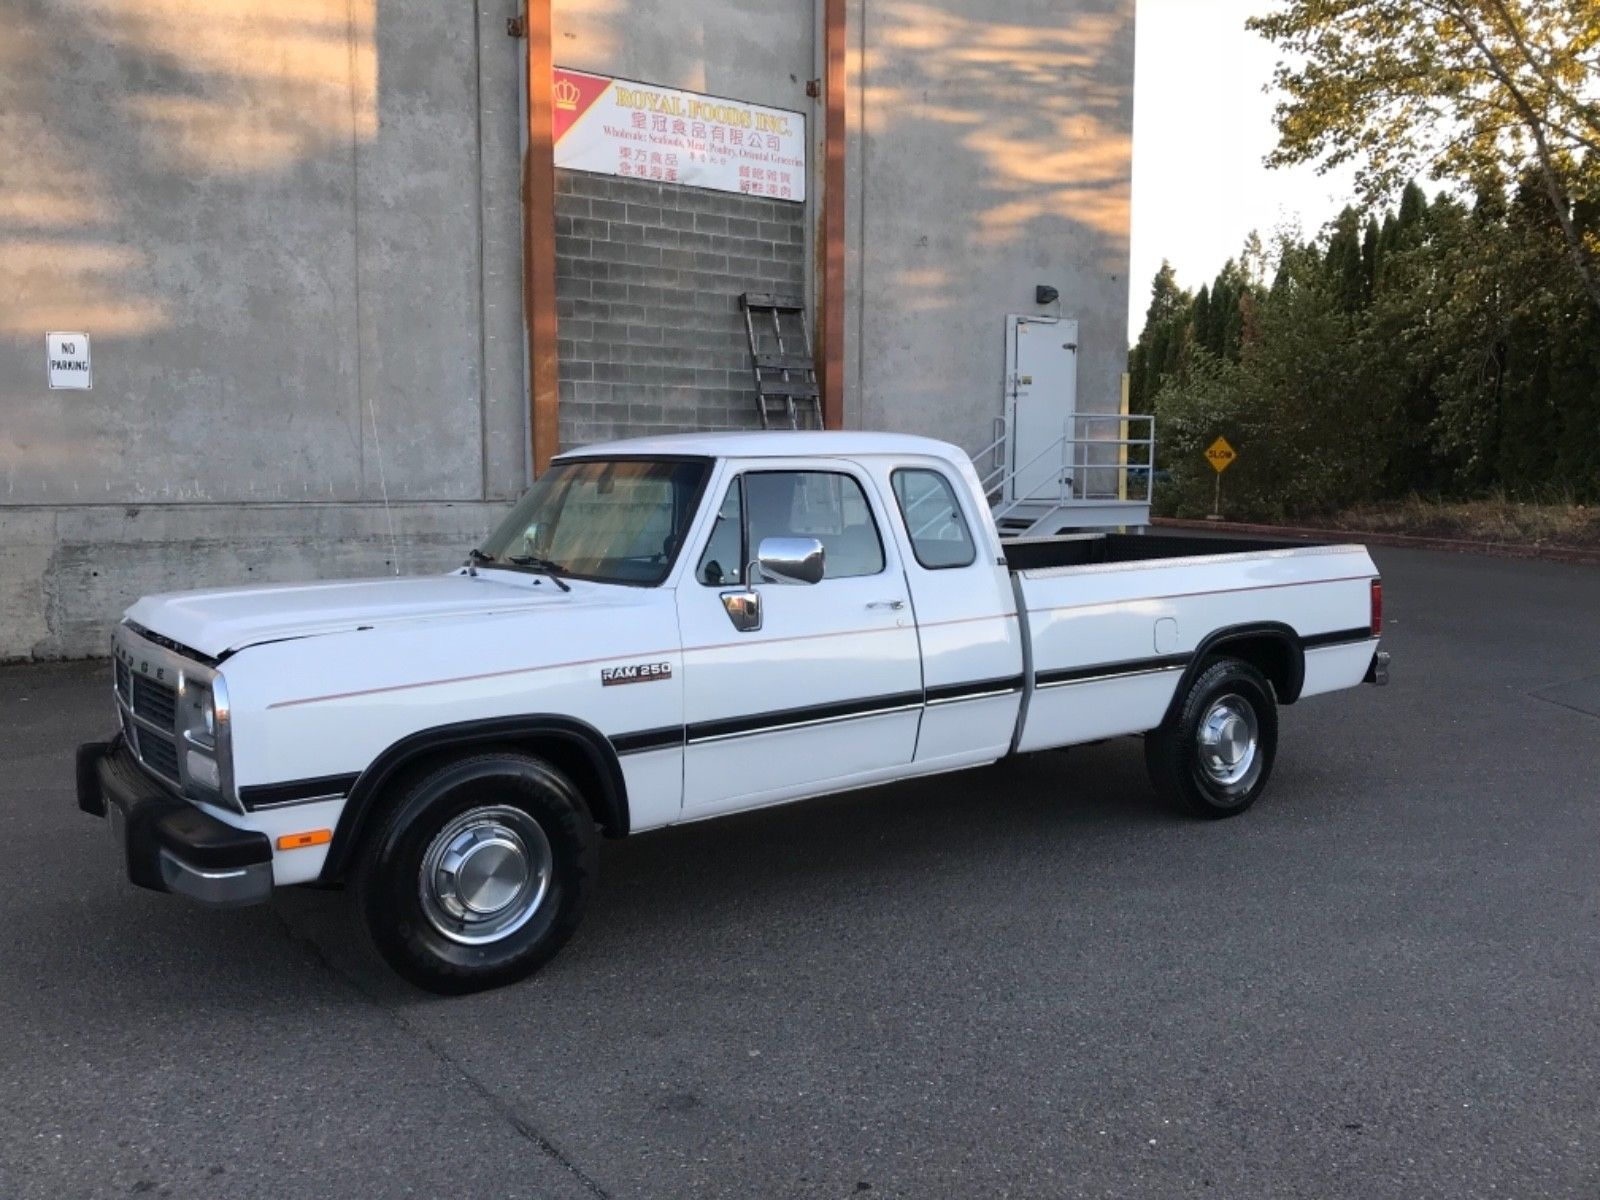 daily turismo 12 valve 5 9 cummins 1993 dodge ram 2500 extended cab. Black Bedroom Furniture Sets. Home Design Ideas